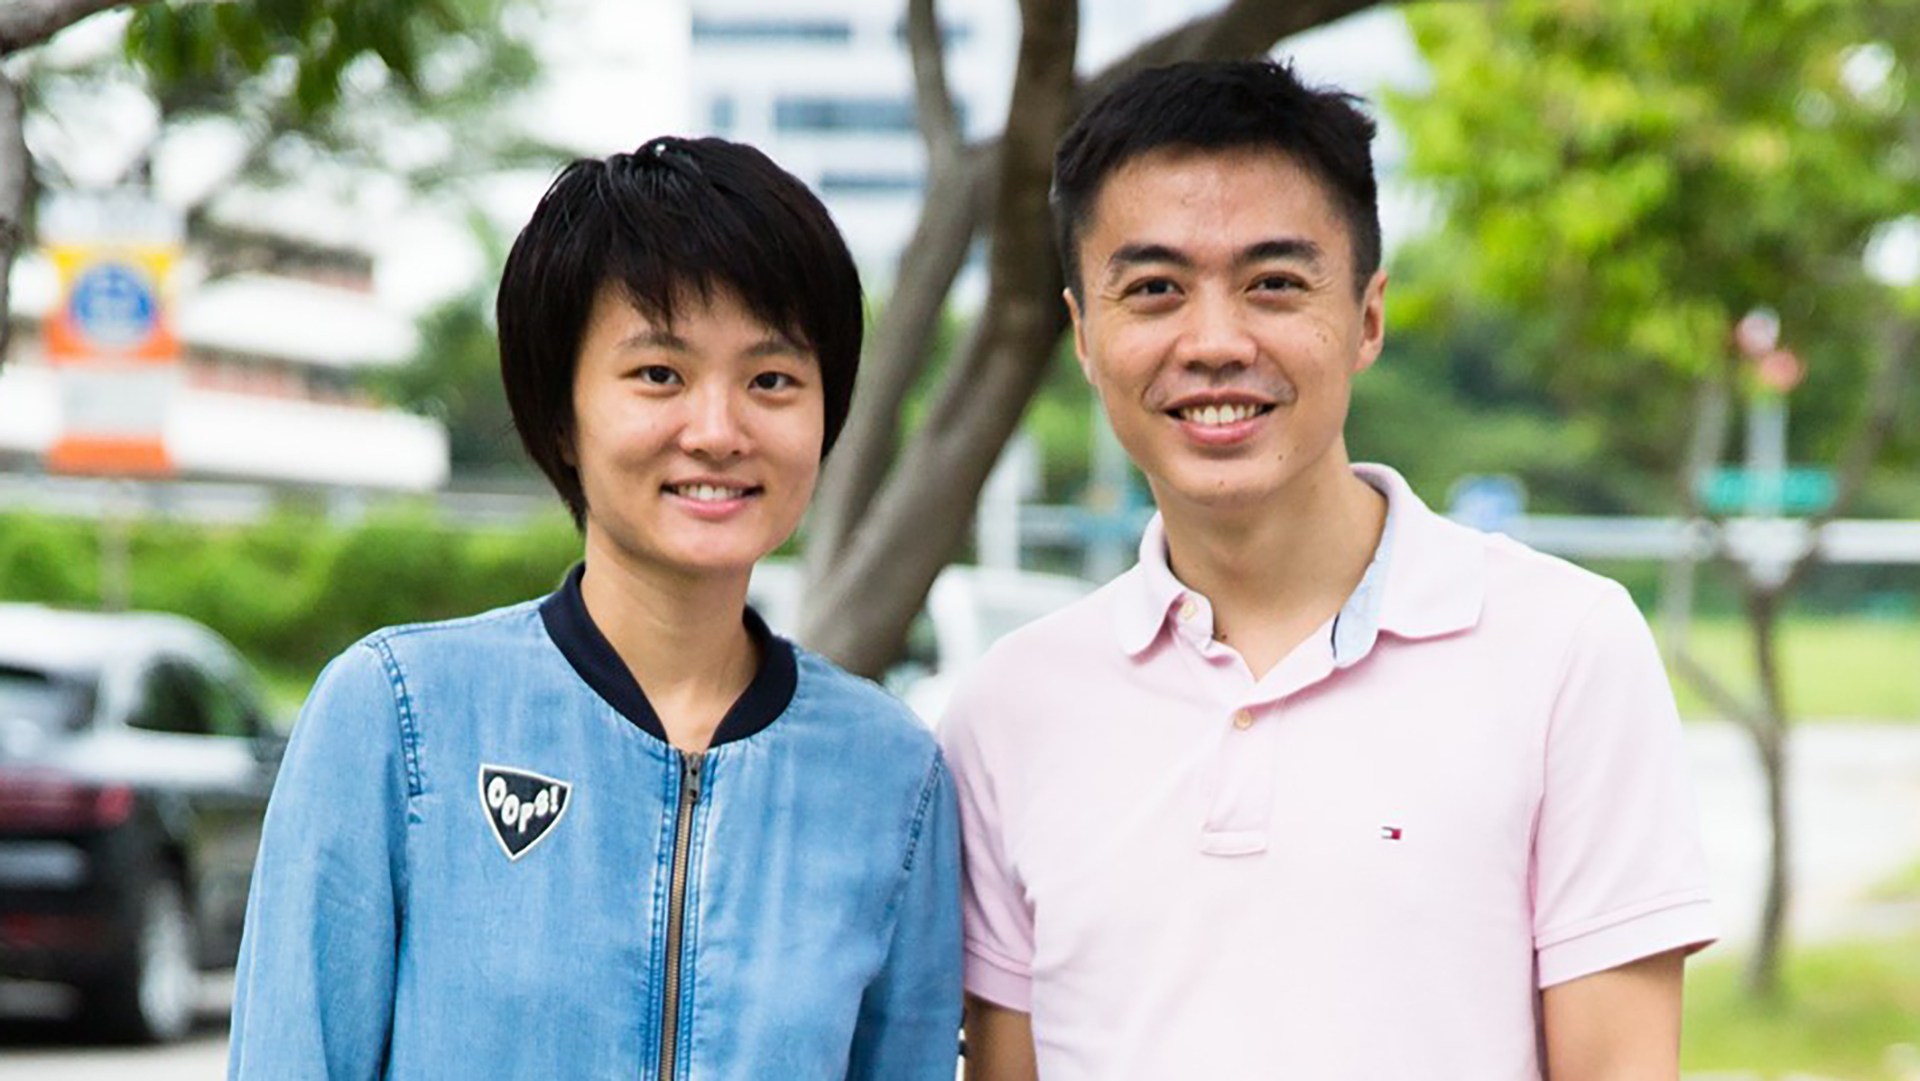 Ski Yeo and Eugene Lee, the husband-and-wife duo who started LearnDialect.sg.